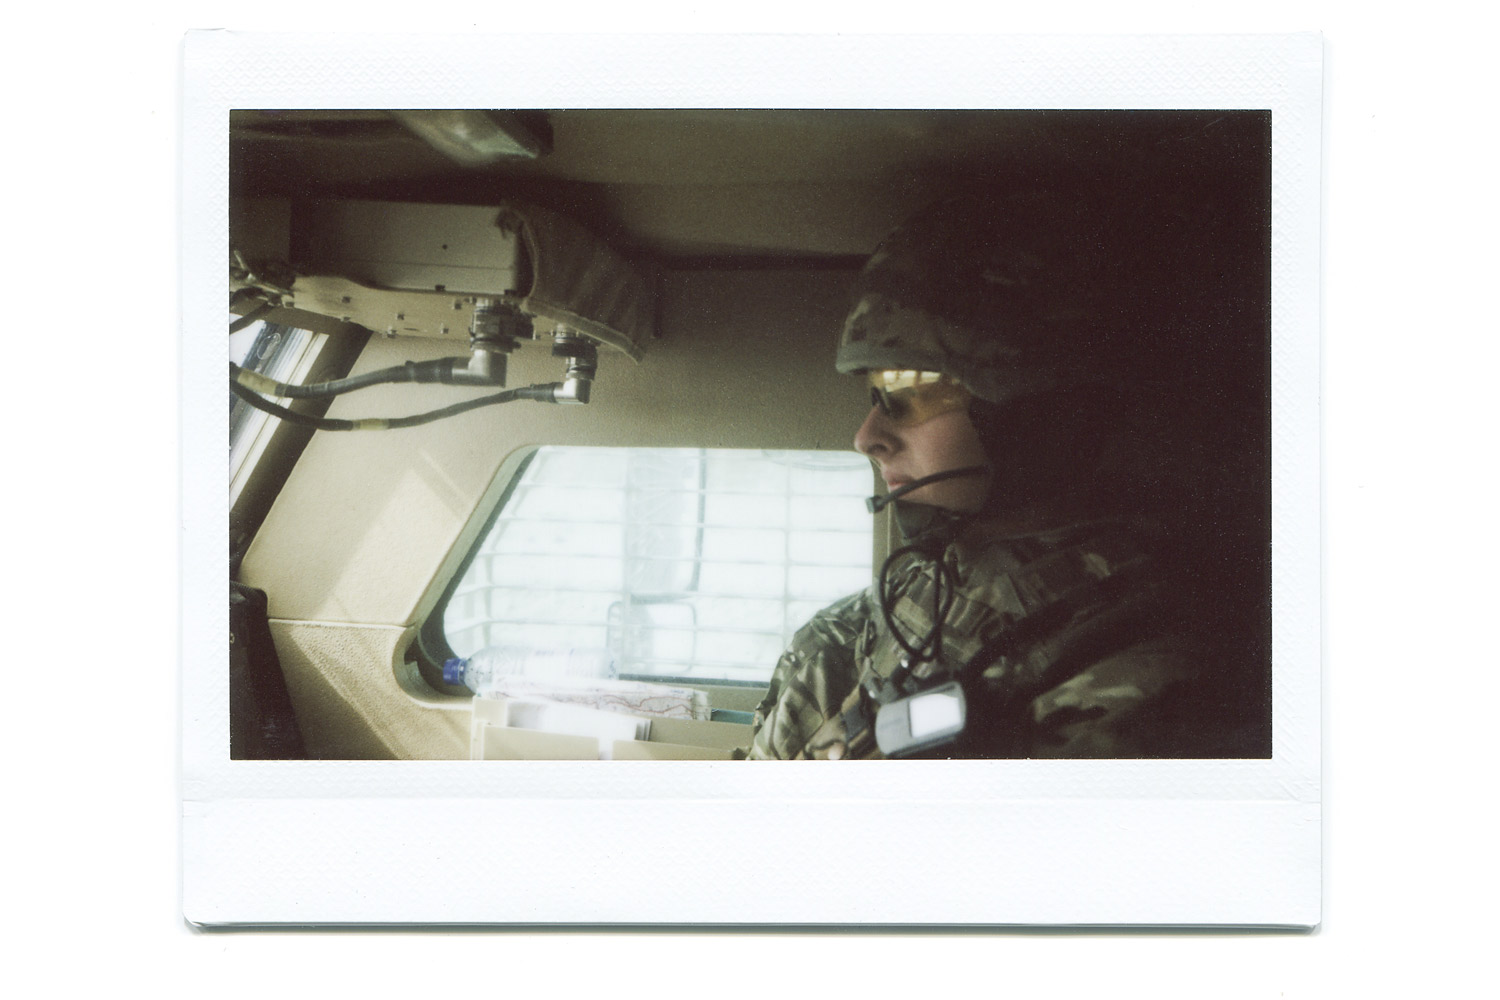 Matt's friend in the Mastiff.  We spent a lot of time in the cab, he was my commander on a few convoys. We shared a lot of laughs and conversations in the cab to pass the long periods of time.